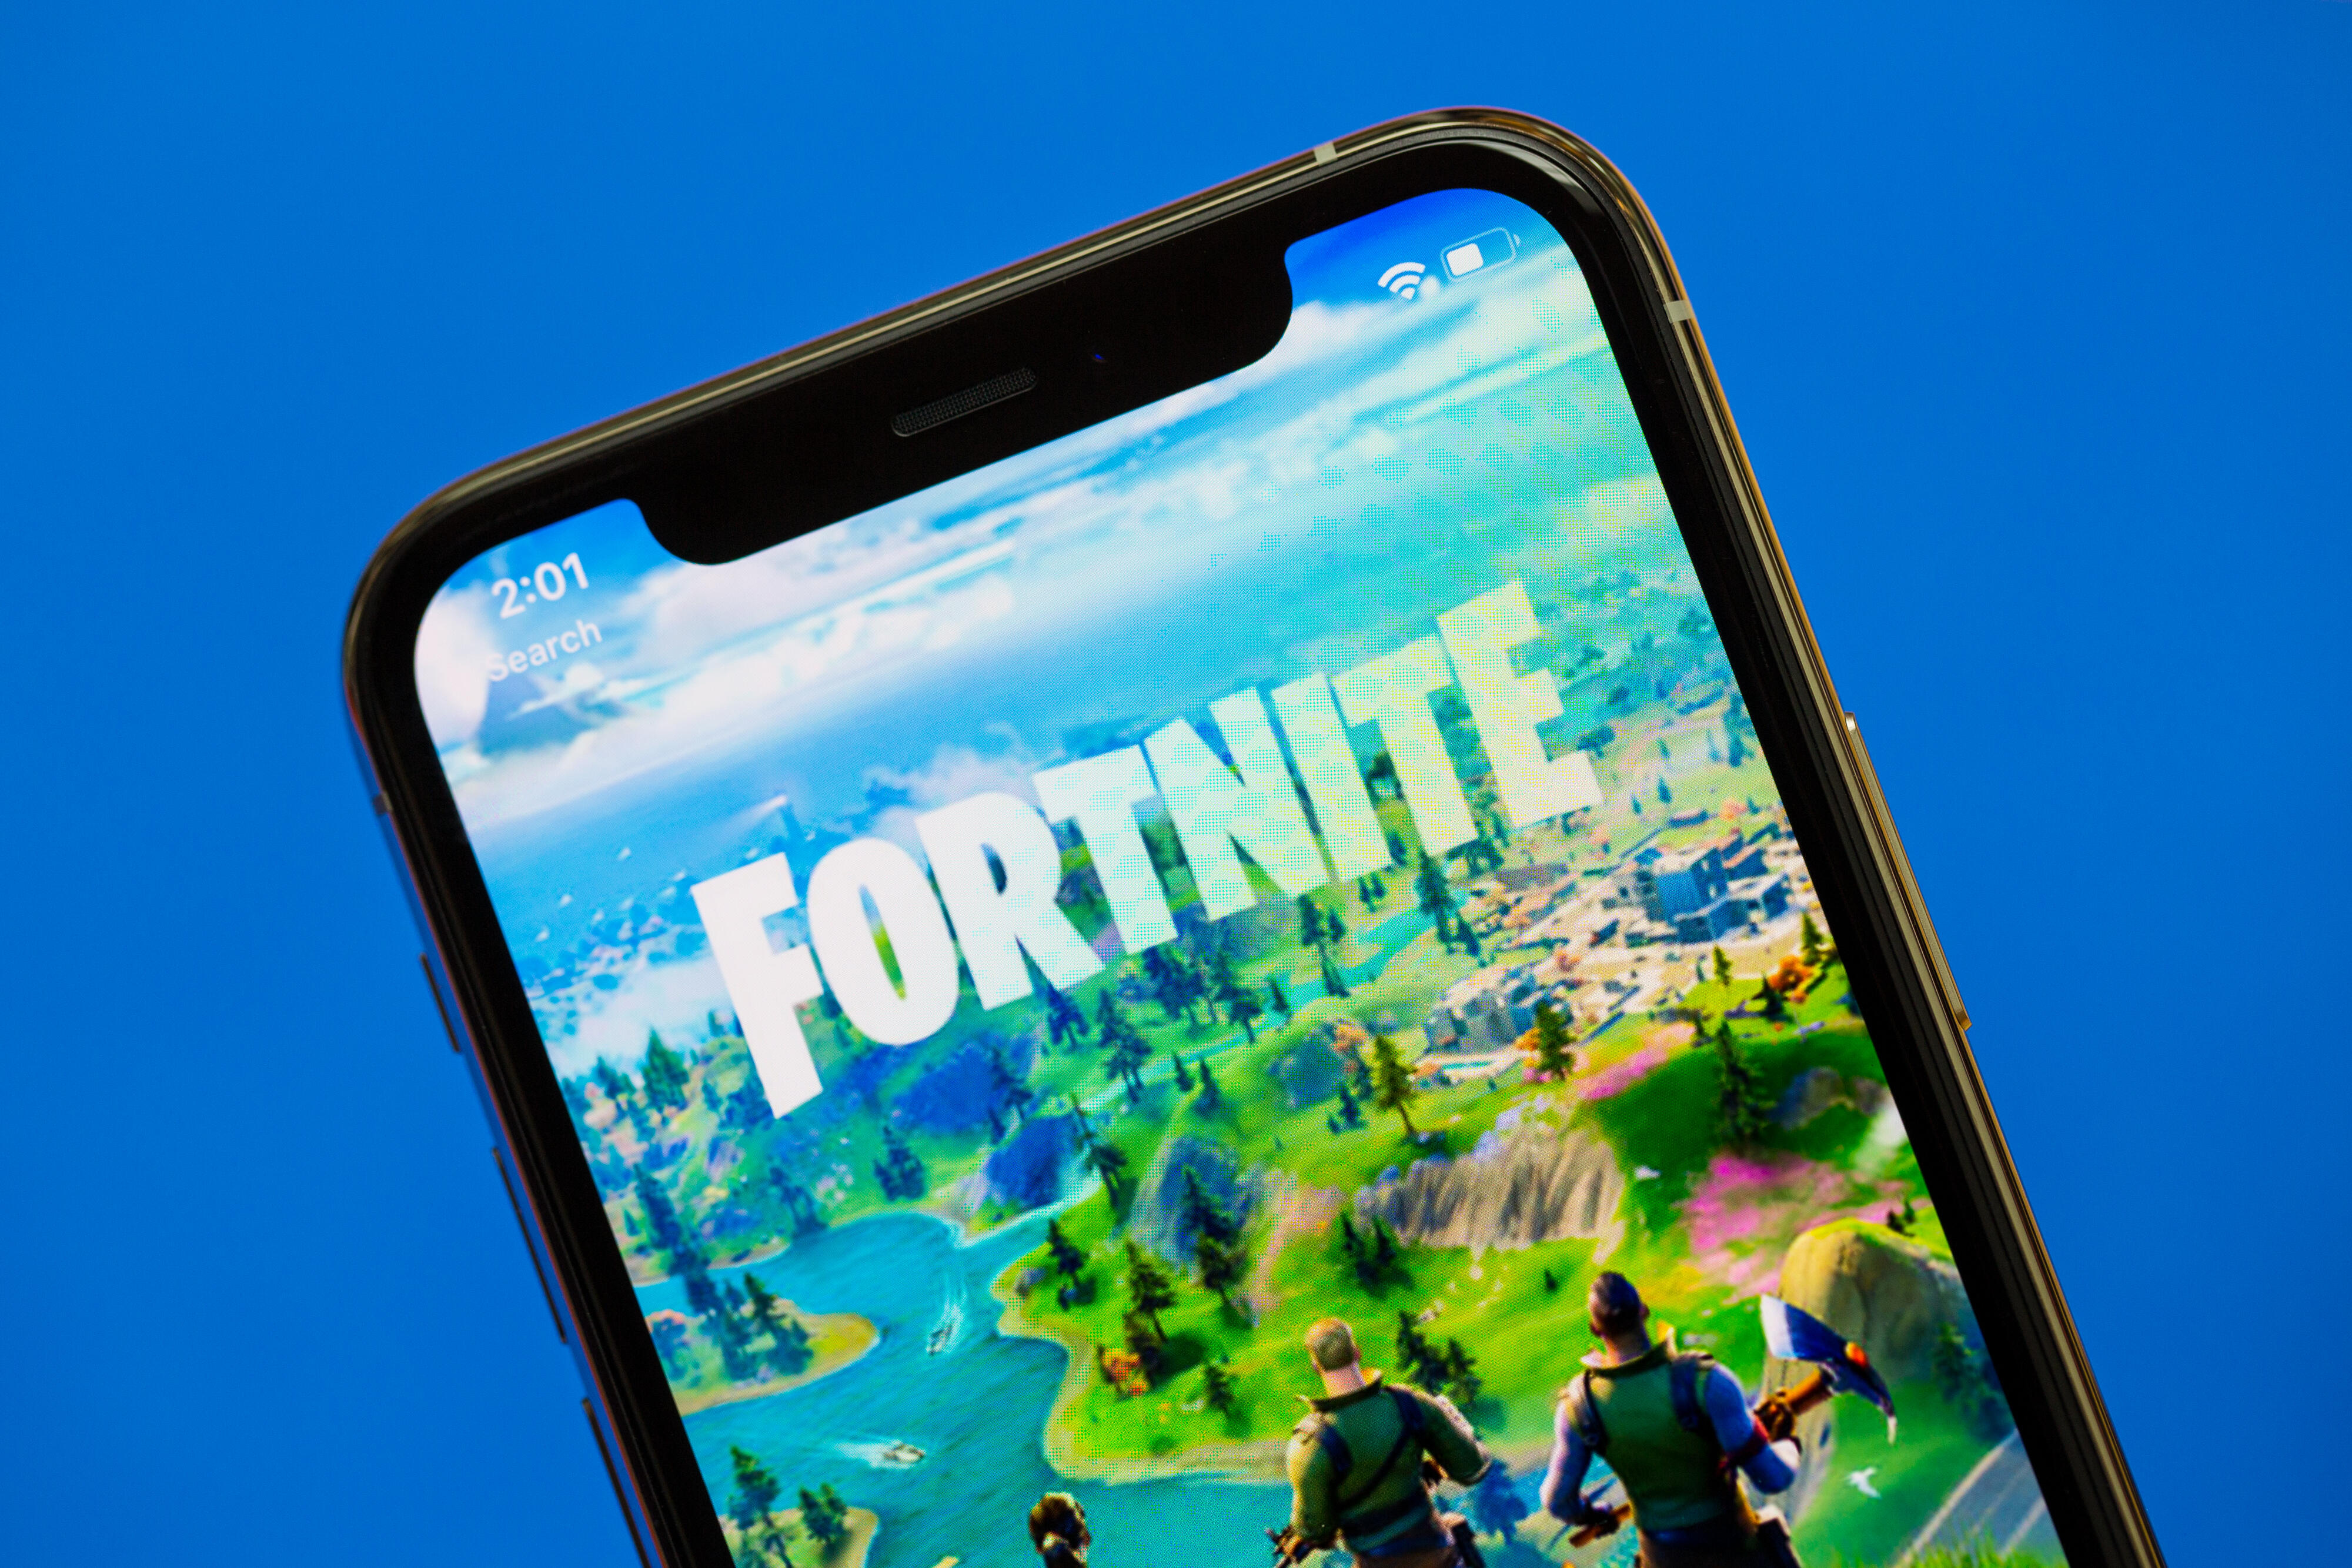 Adding Fortnite Mobile Fortnite Banned From Apple And Google App Stores And Developer Epic Sues Cnet